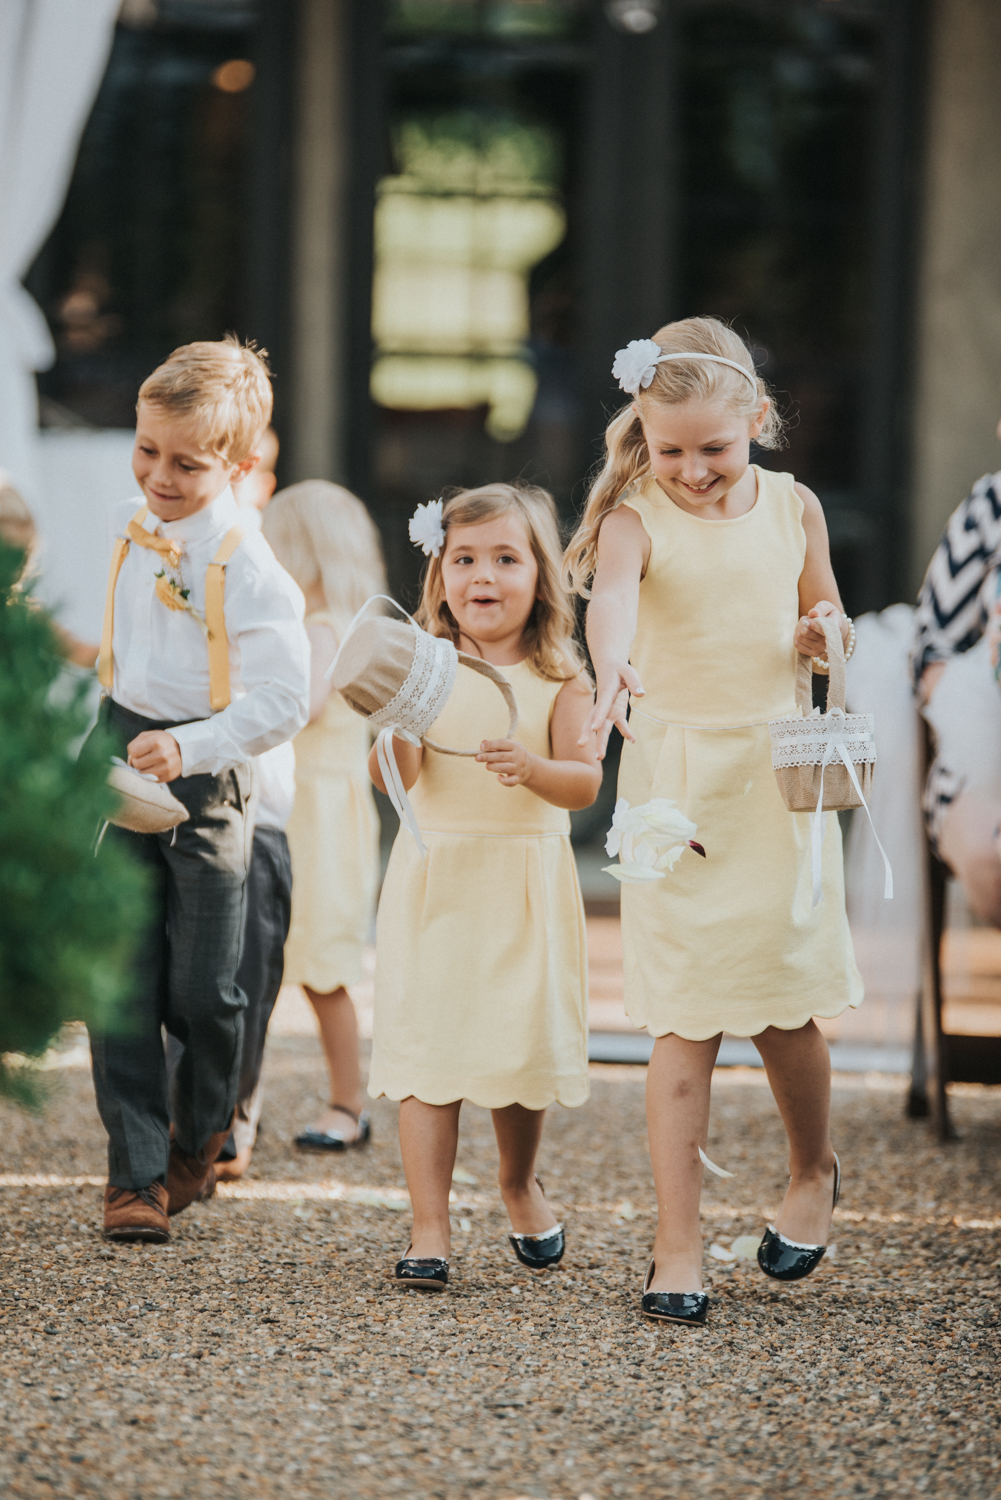 Alix + Ryan: Outdoor Greenville Wedding at Hotel Domestique | Palmetto State Weddings